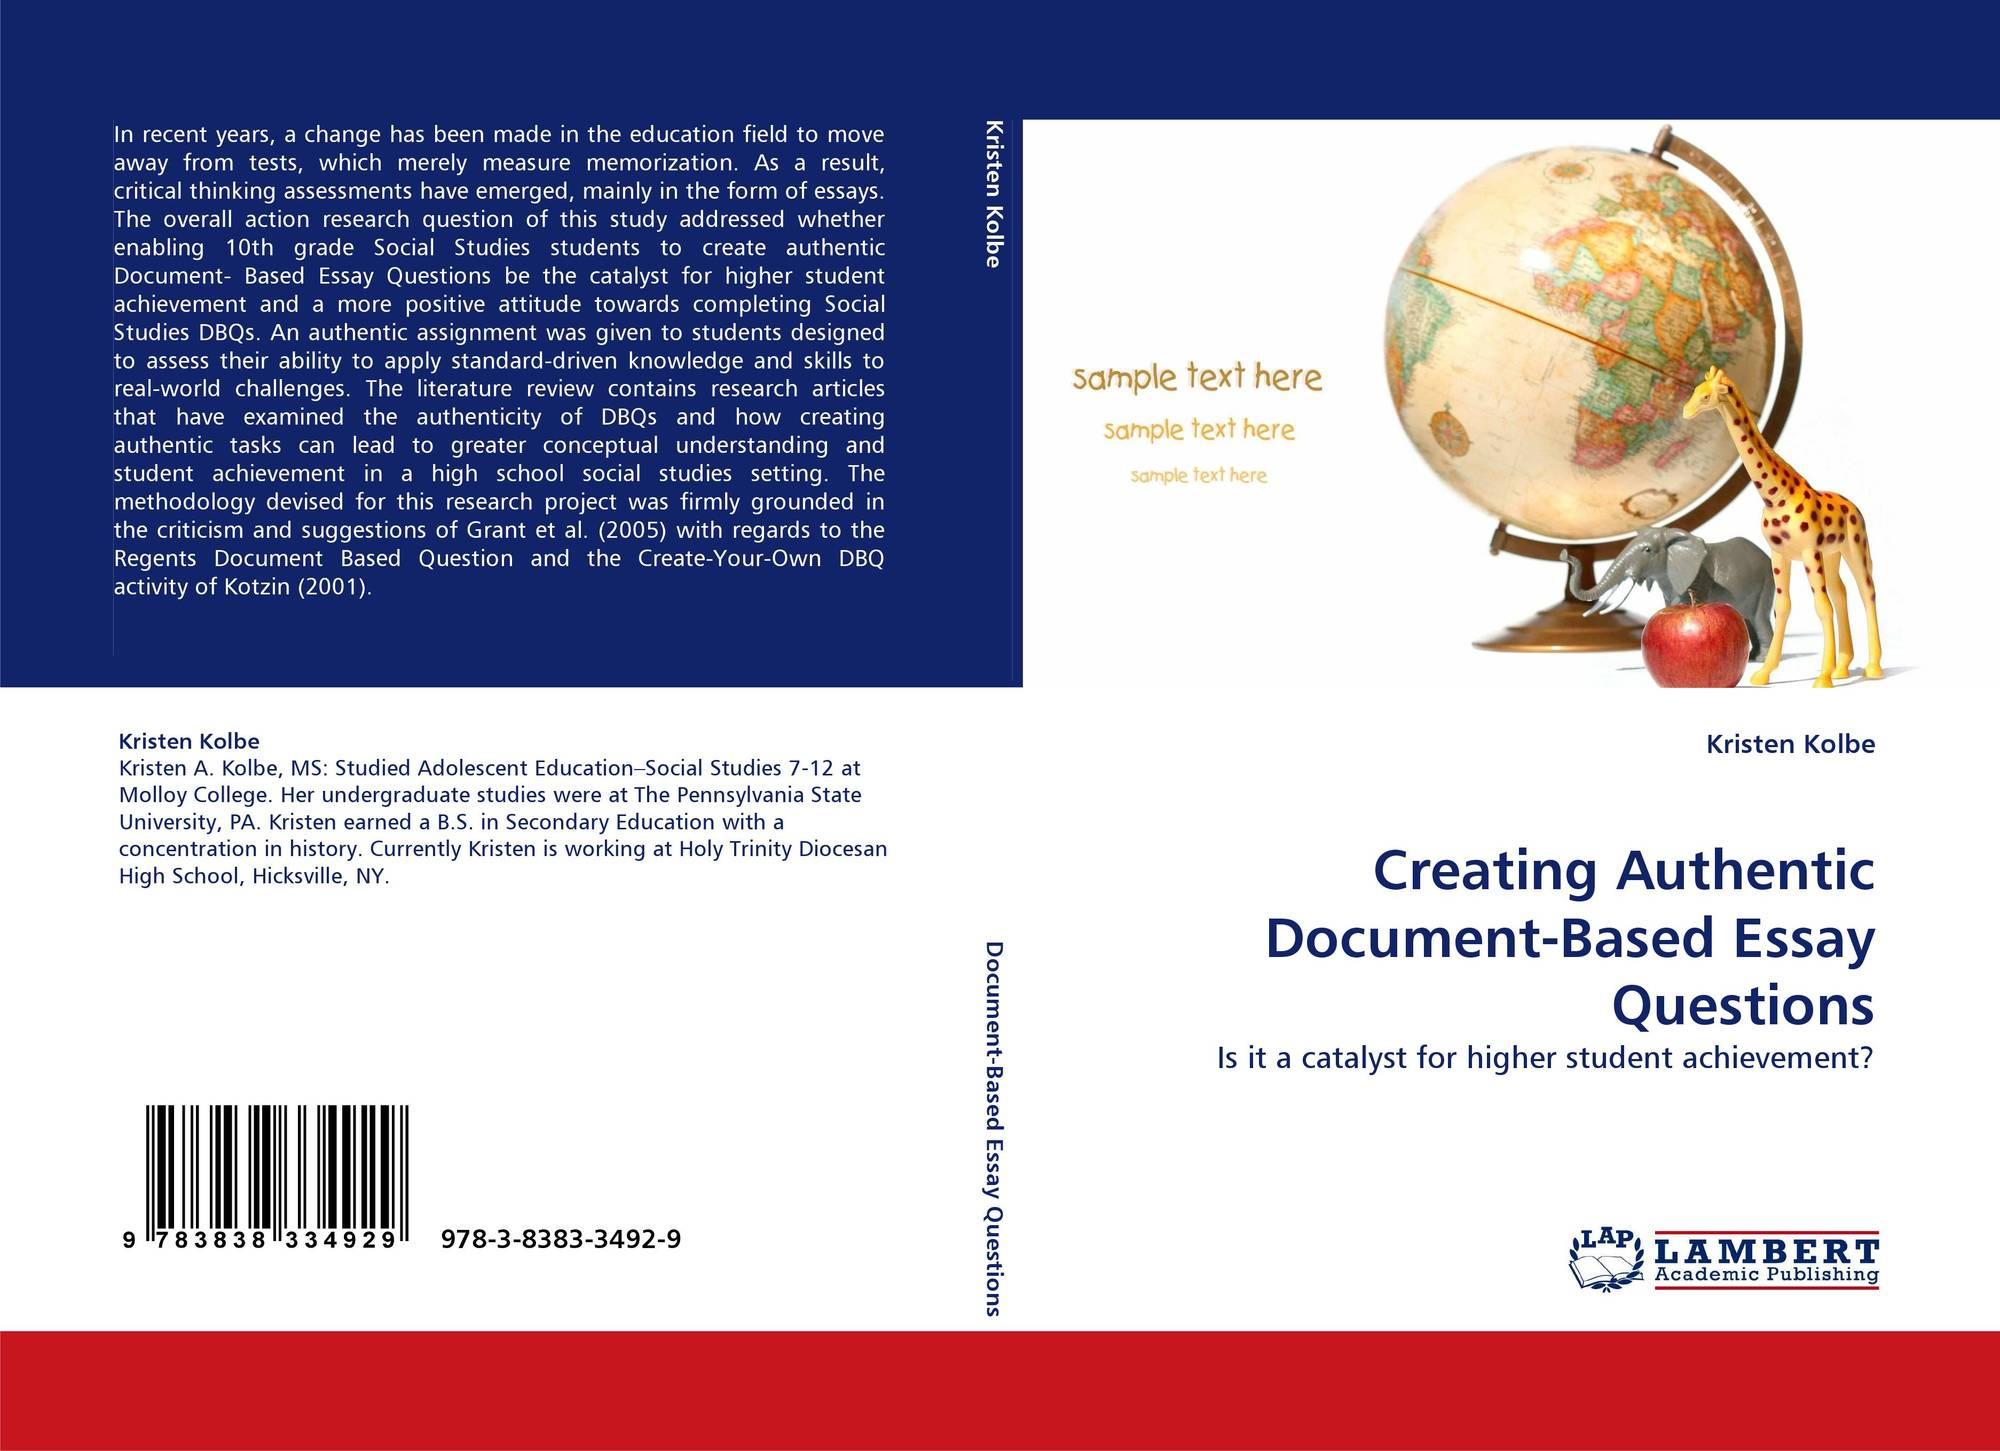 authenticity in music essay Published: mon, 5 dec 2016 this thesis and its associated research had its origins in my own fascination with the generic concept of authenticity, as it exists within life generally, and specifically within popular music.